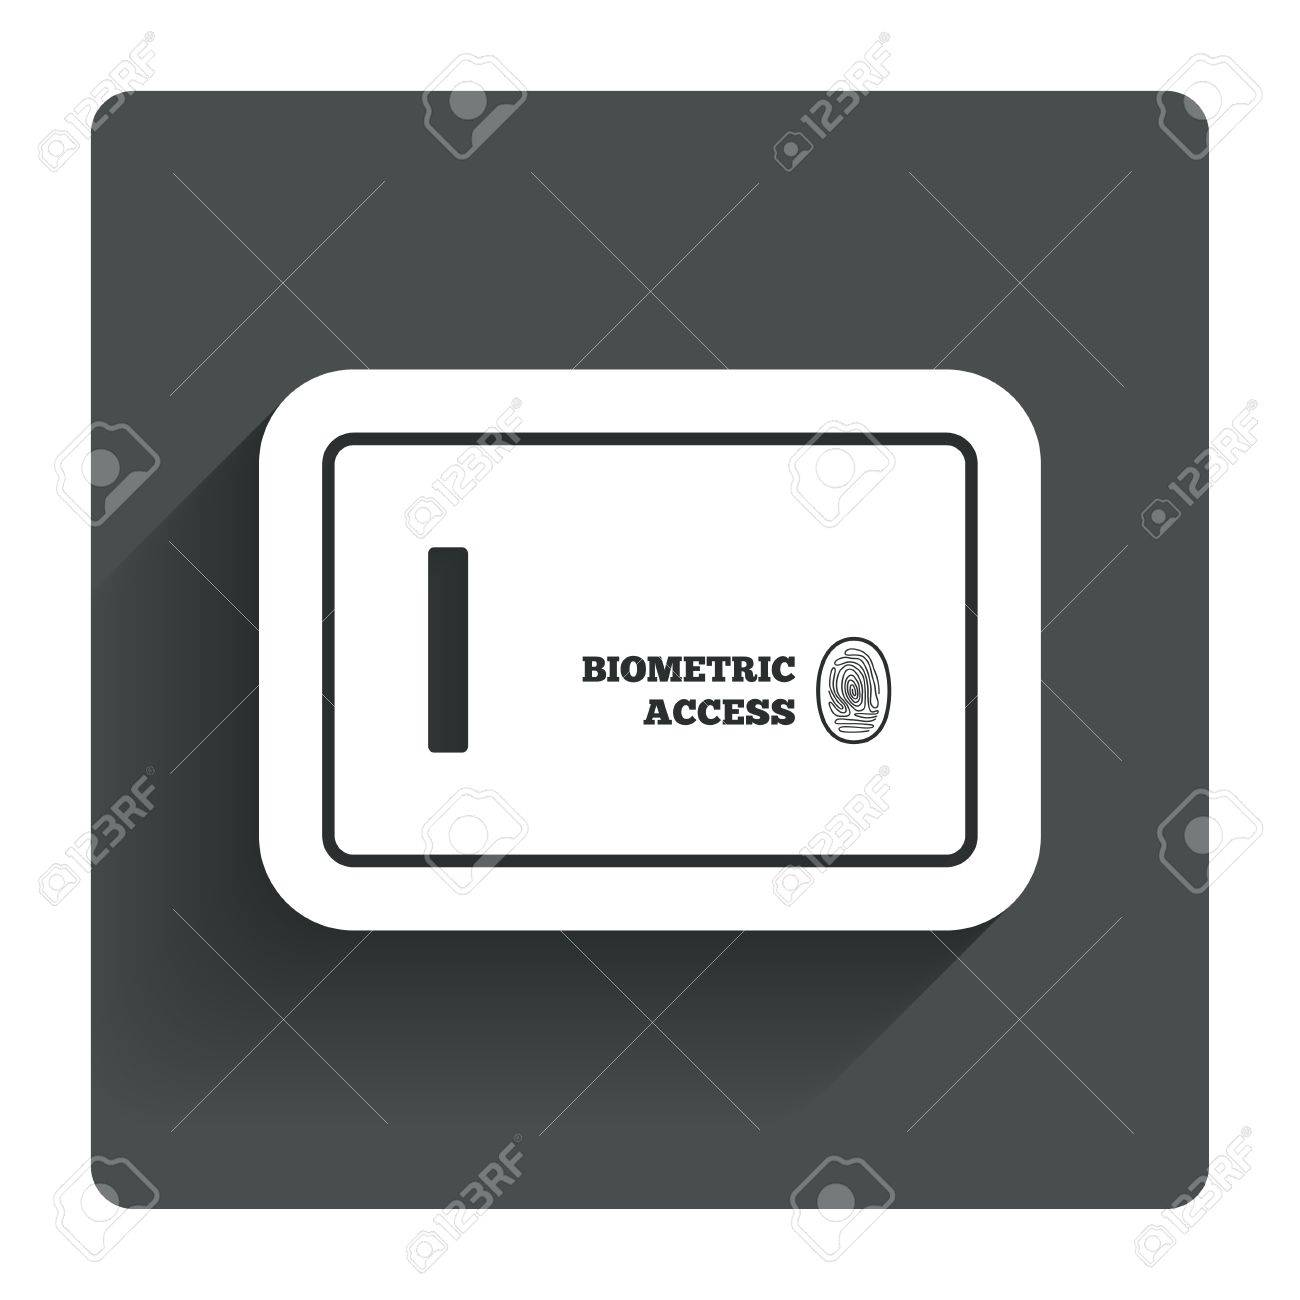 Safe sign icon  Deposit lock symbol  Biometric access by fingerprint